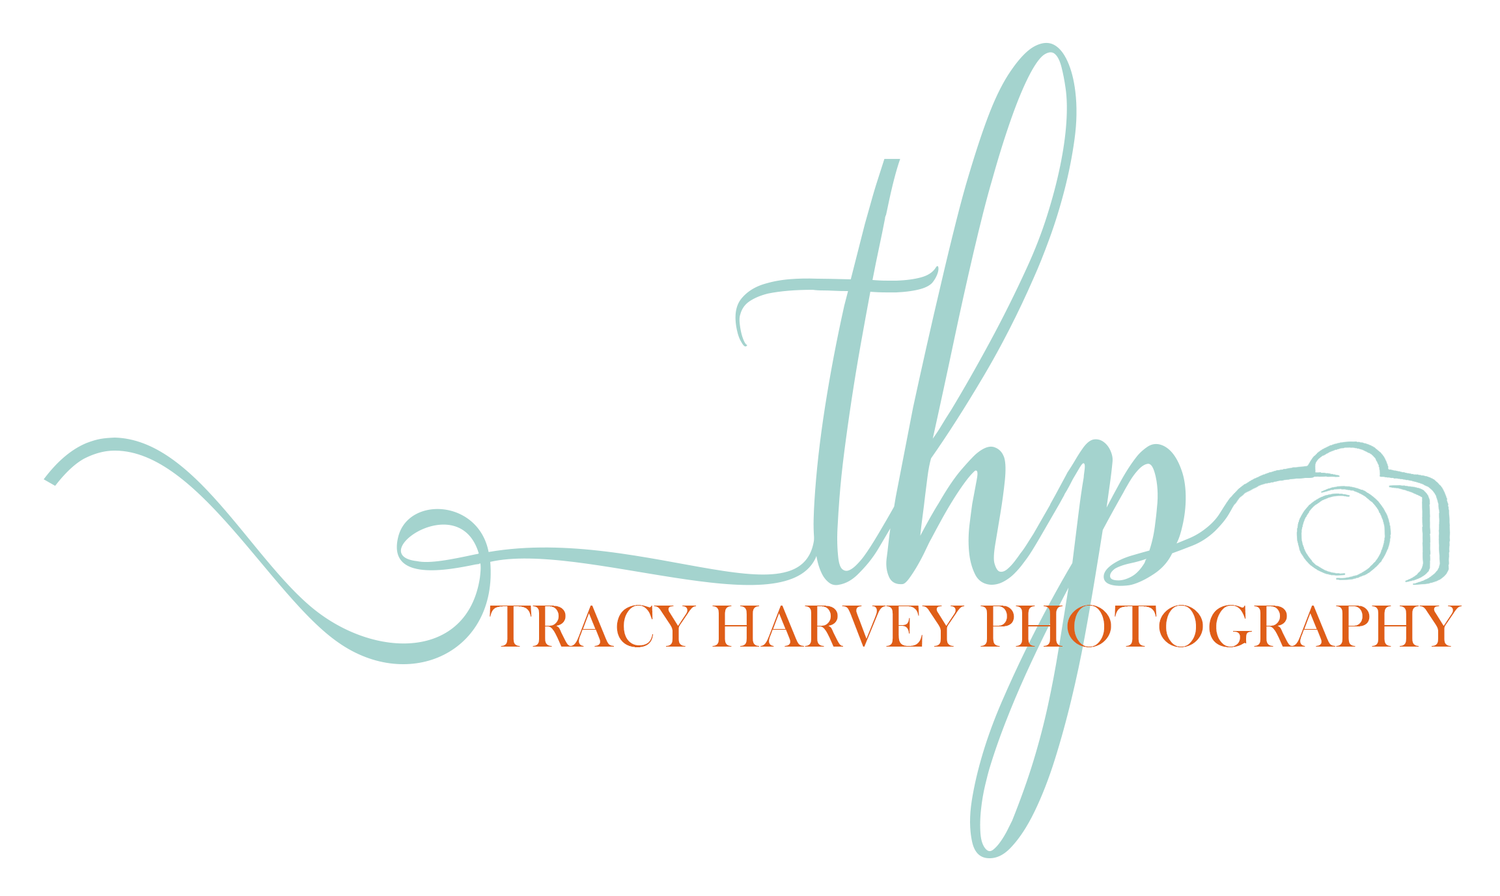 TRACY HARVEY PHOTOGRAPHY